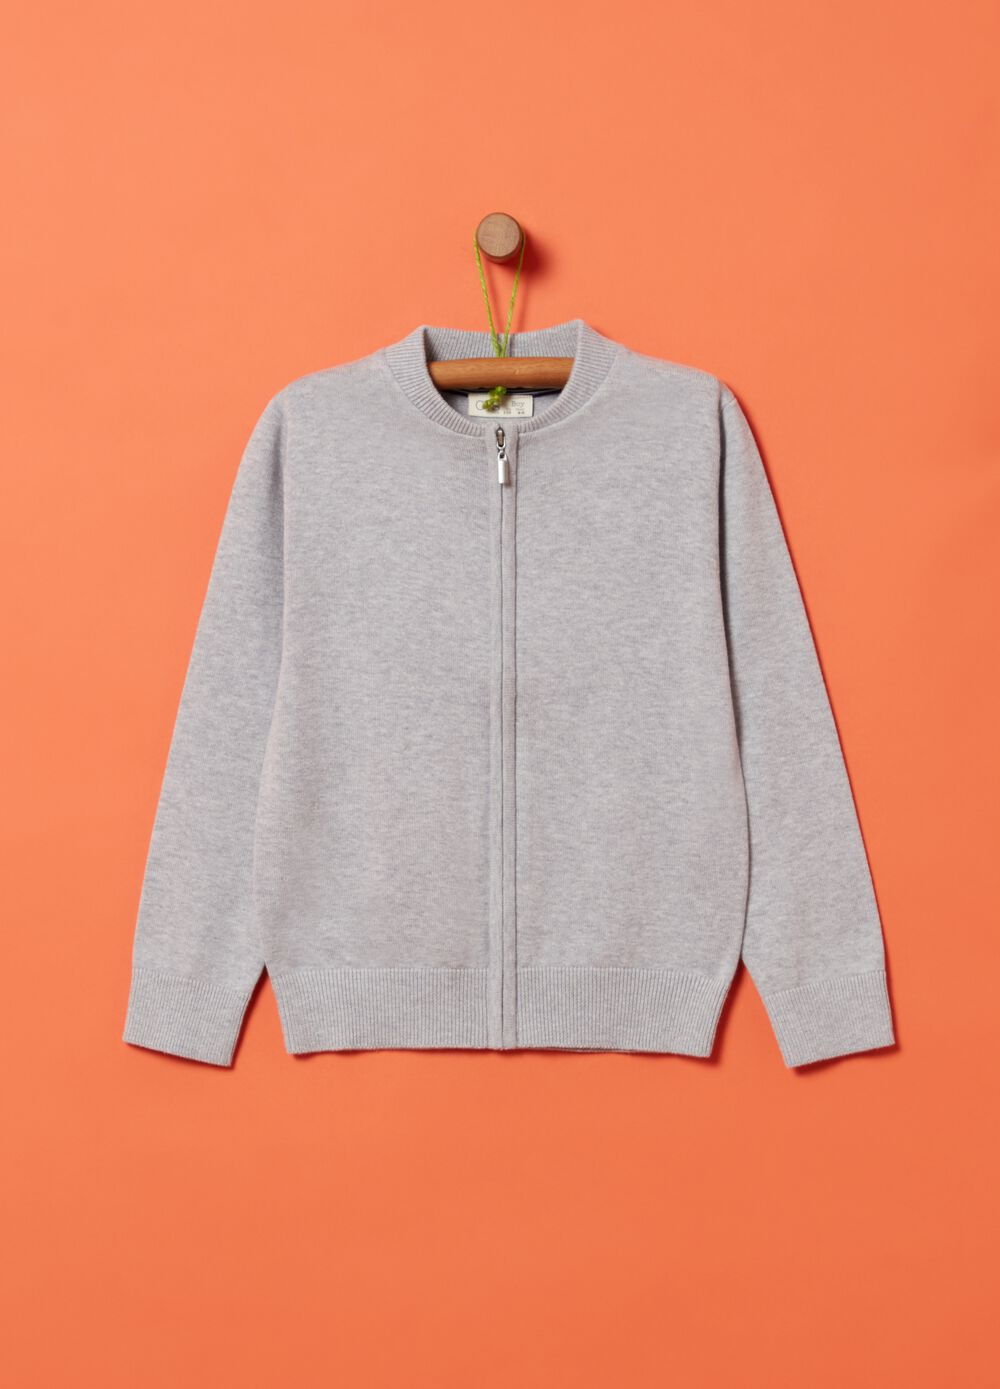 Knitted full-zip sweatshirt in 100% organic cotton